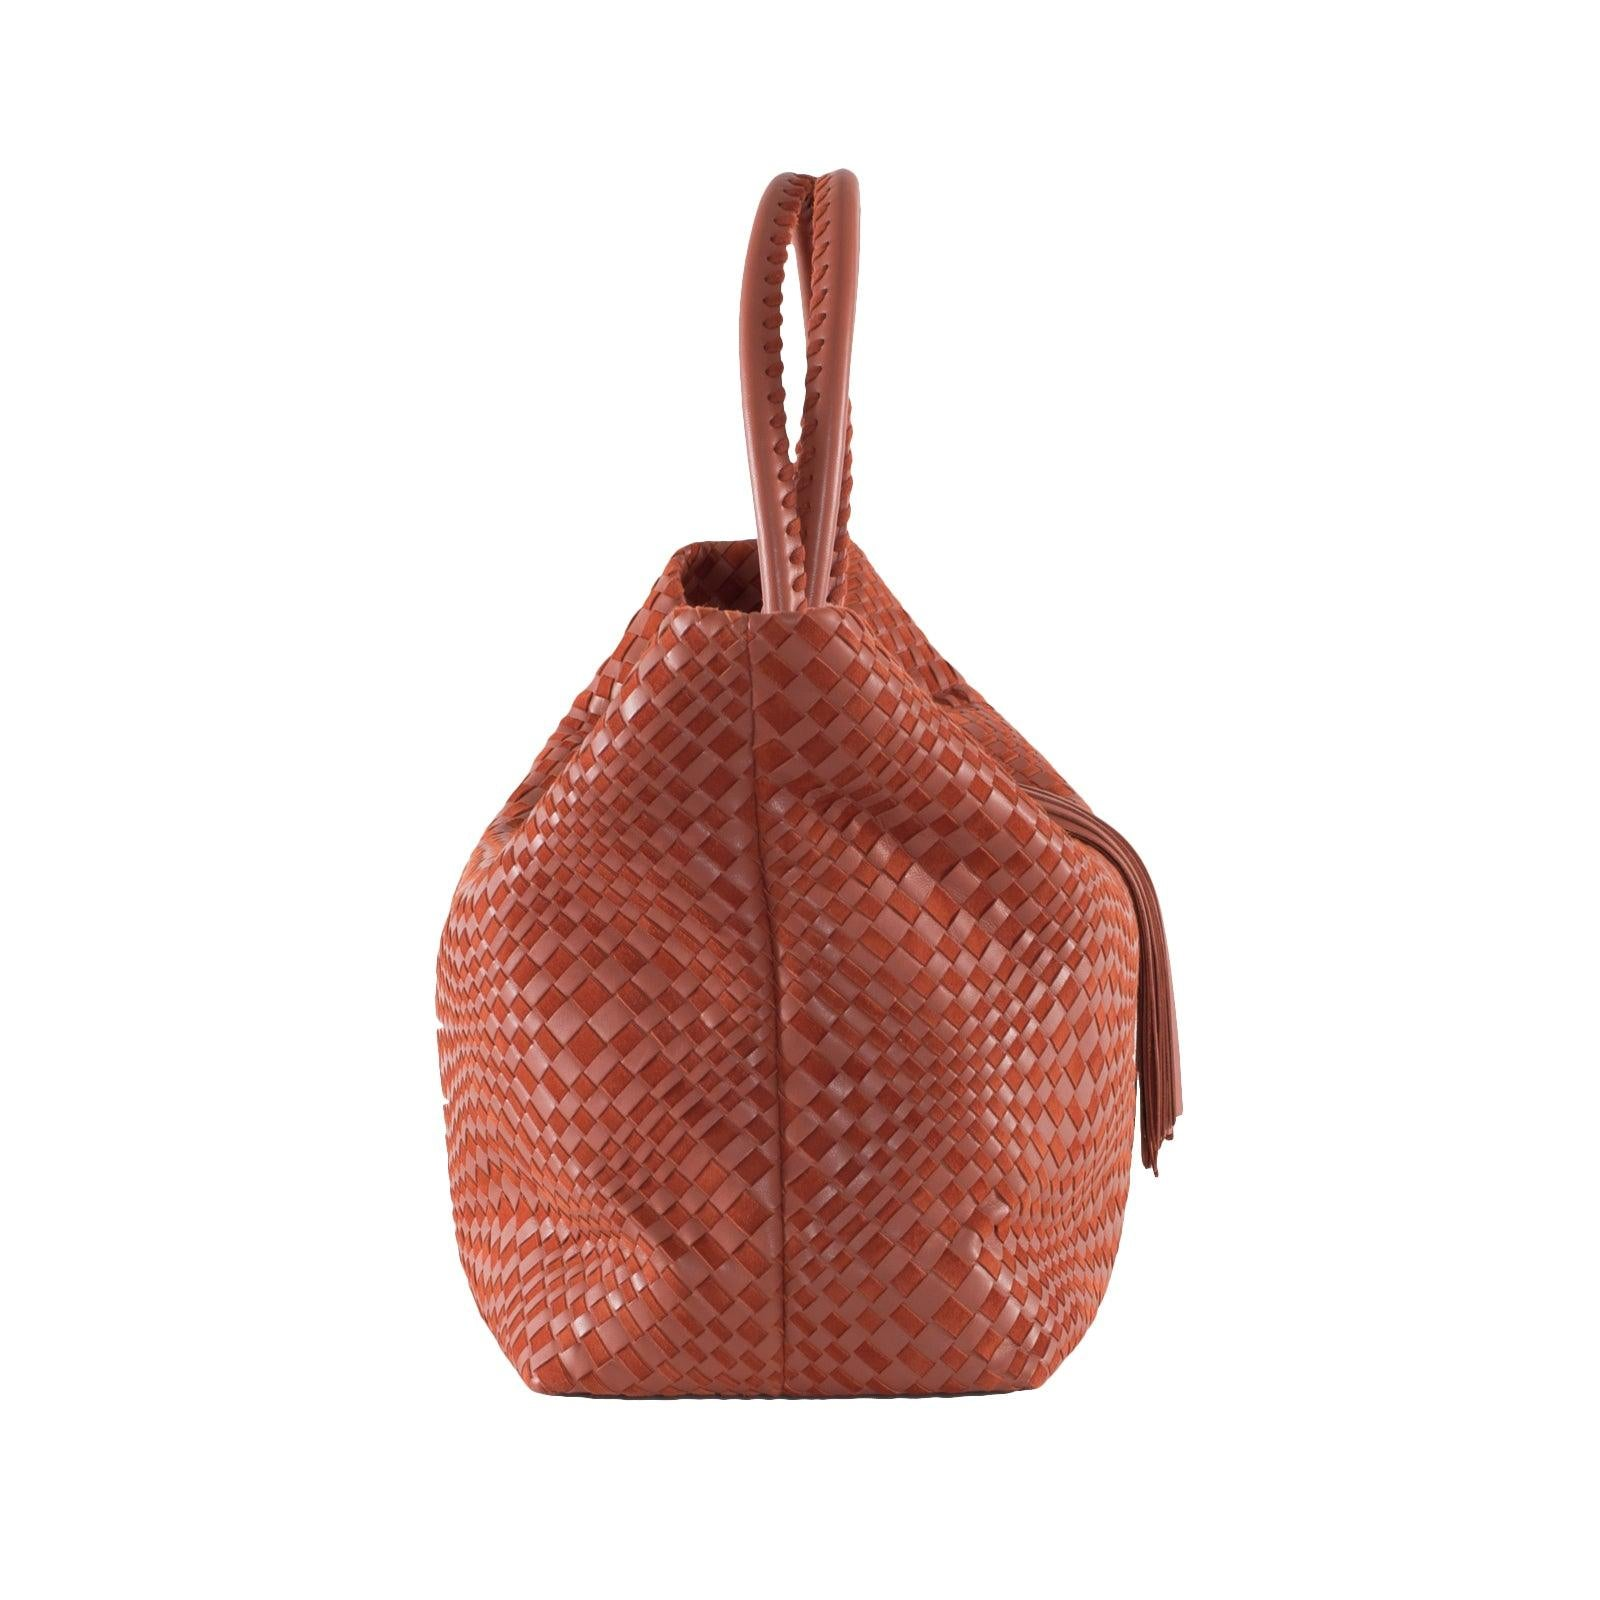 Jennifer Tattanelli crafted in Florence this gorgeous leather bag with a practical shape for everyday use, Sophia Maxi is the perfect sized tote to accompany you everywhere from a trip to the market to a trip in the air